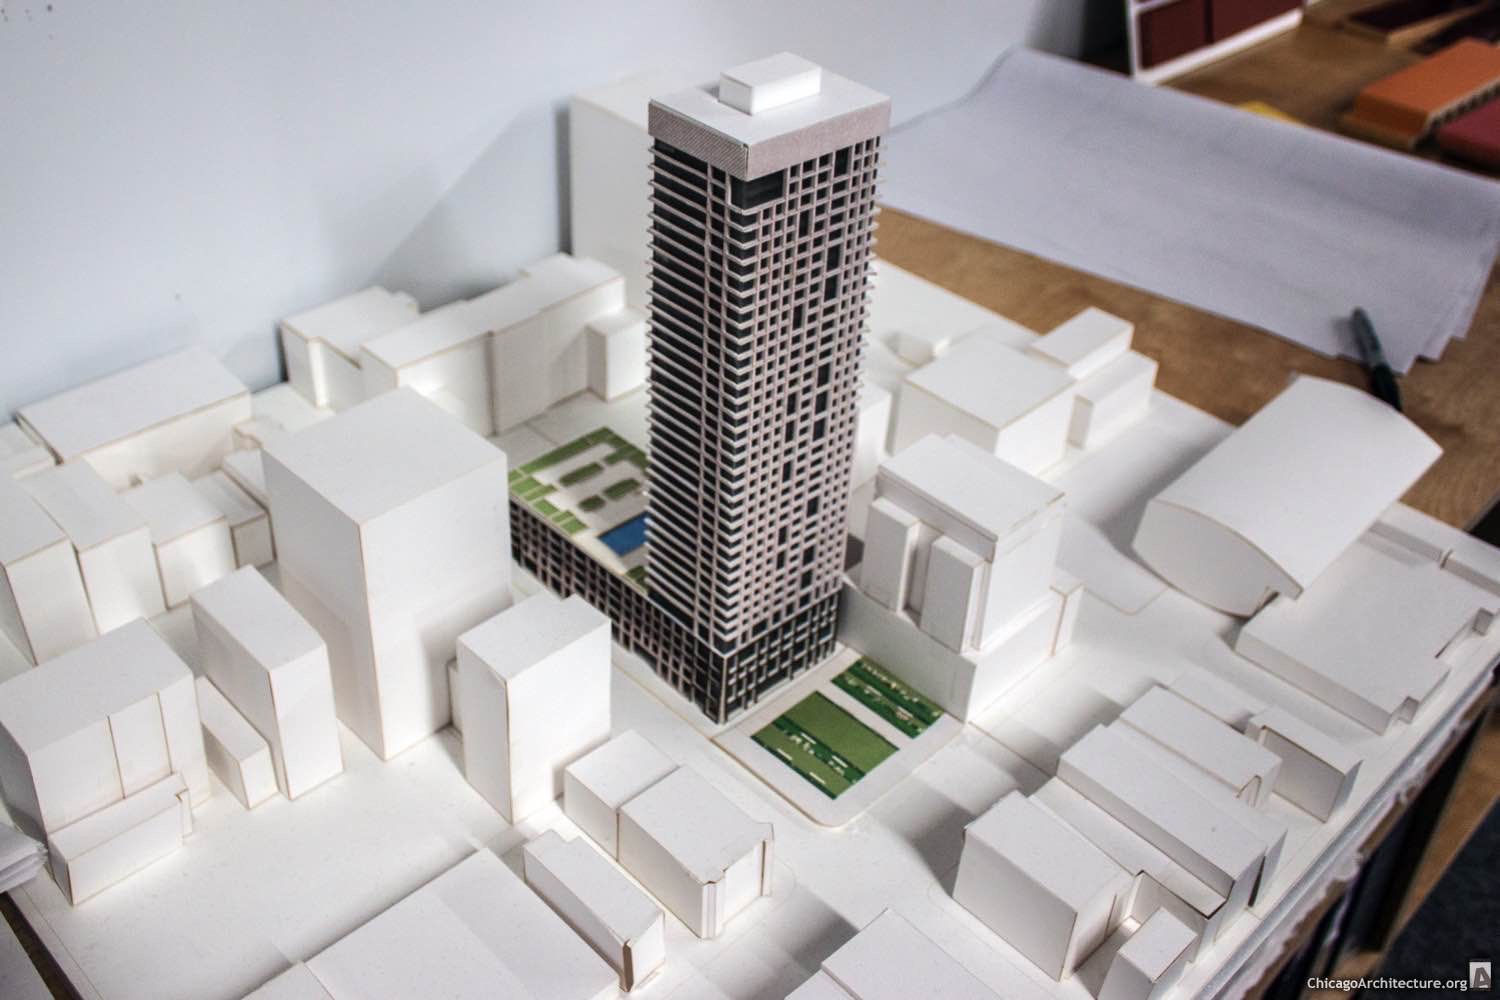 Model of 720 North LaSalle, which will replace the Howard Johnson's motel